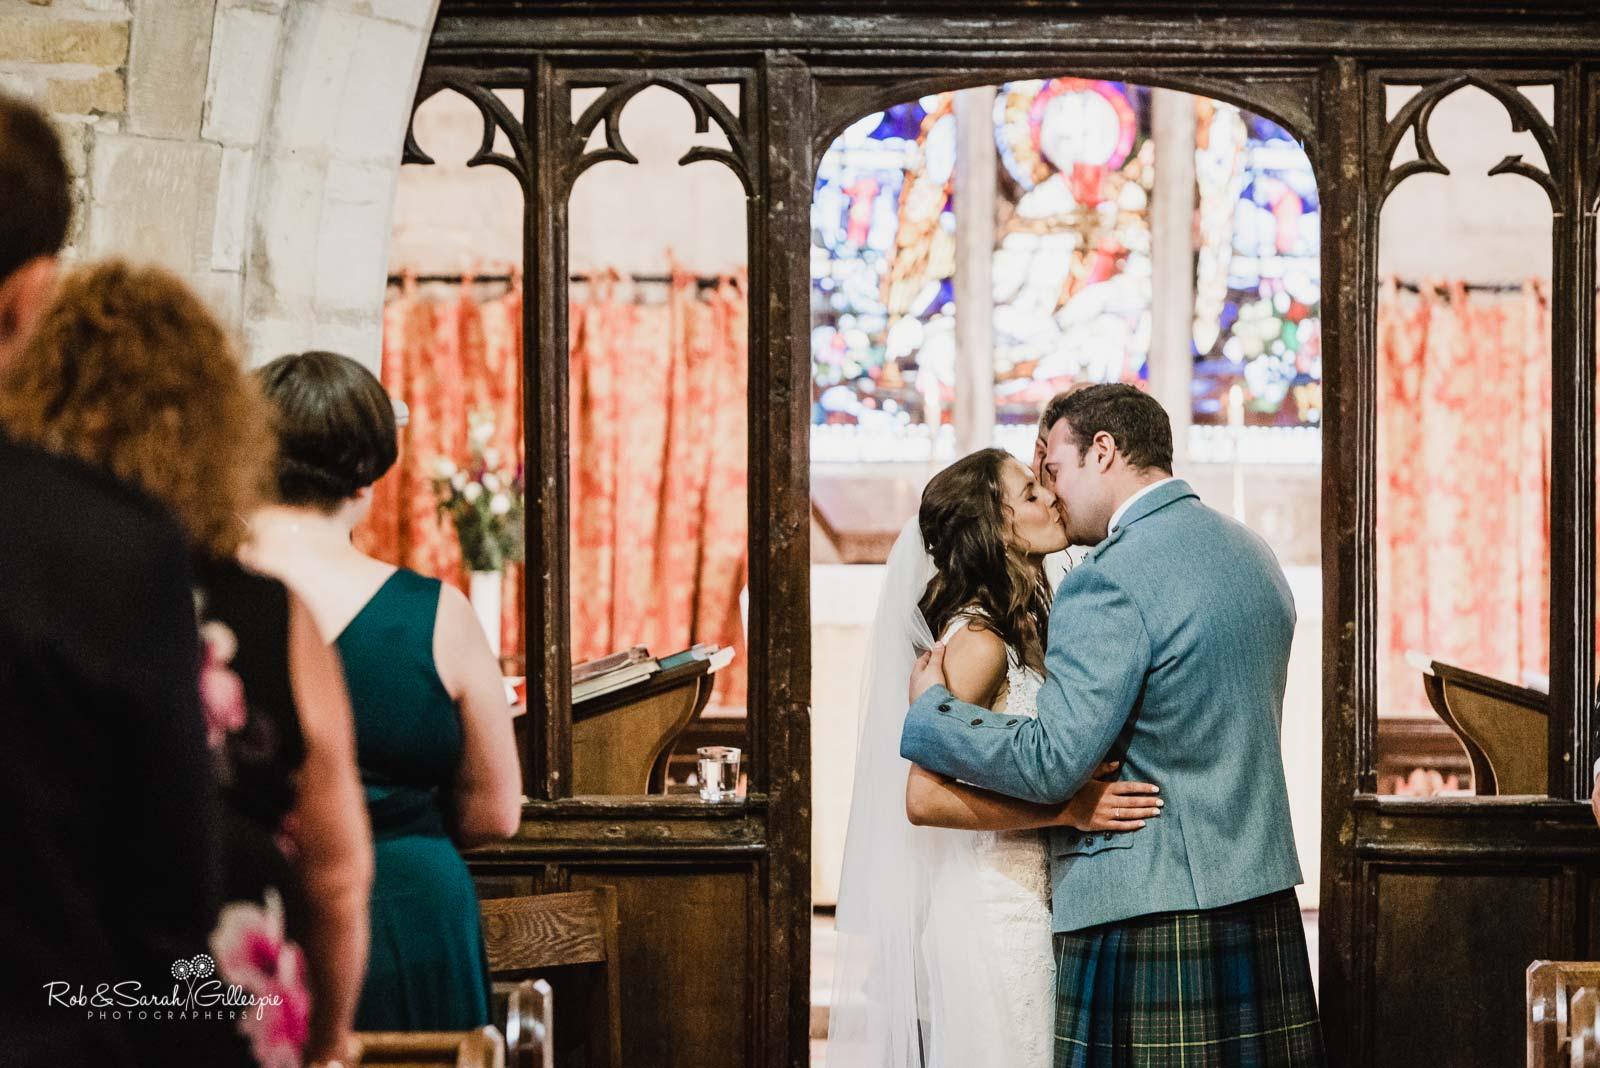 Bride and groom kiss during wedding ceremony at St Giles church Packwood